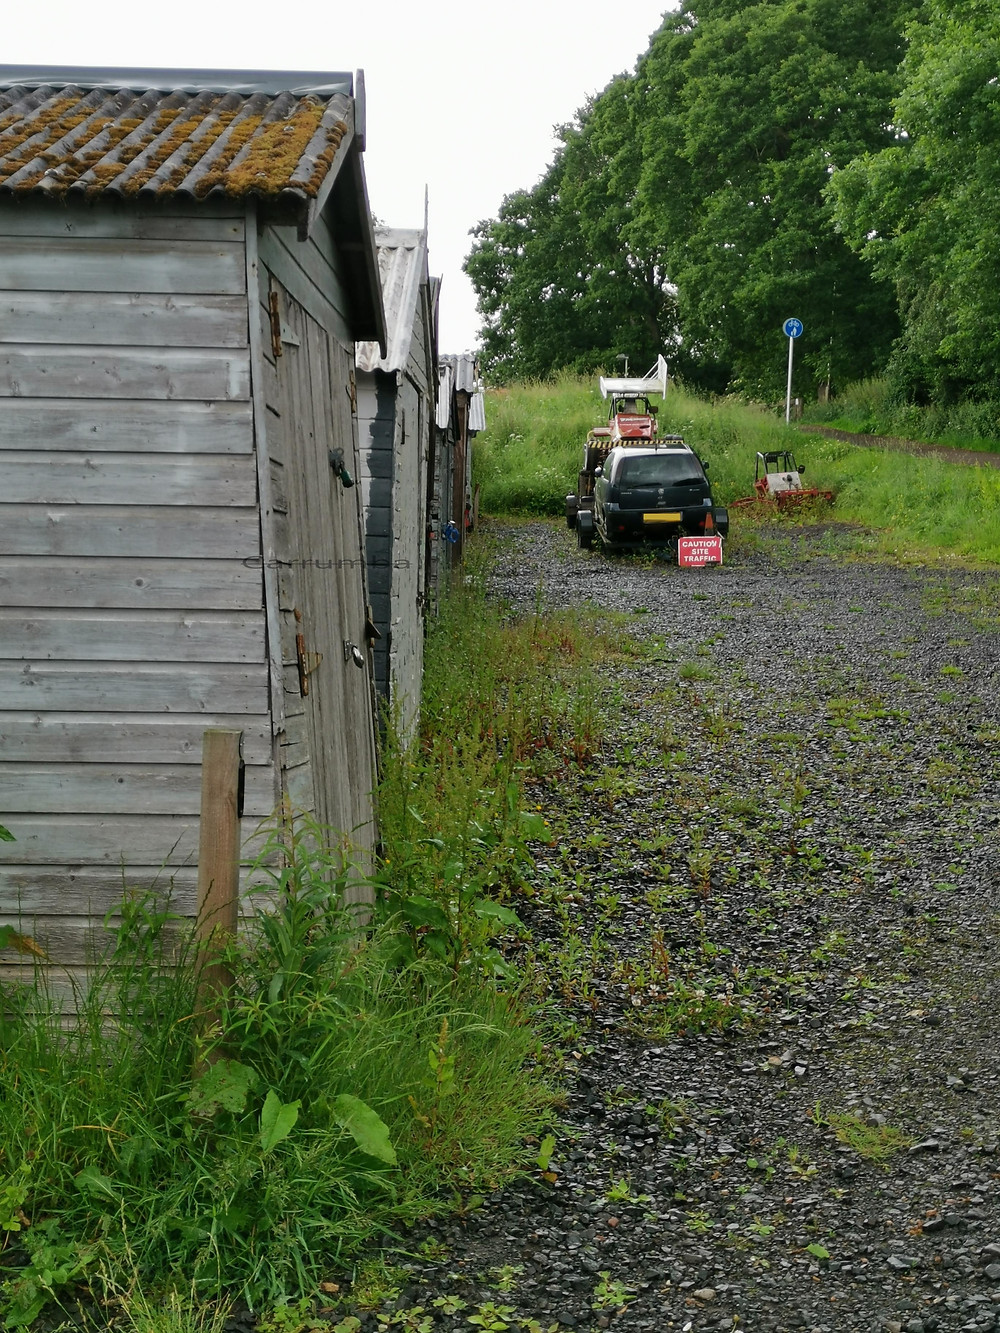 Five lockup garages in a row with corrugated iron rooves covered in moss. Abandoned stock car on trailer with black Vauxhall Corsa. Another stock car  frame in overgrown grass with path to right bordered by trees. Lockup garages surrounded by weeds.